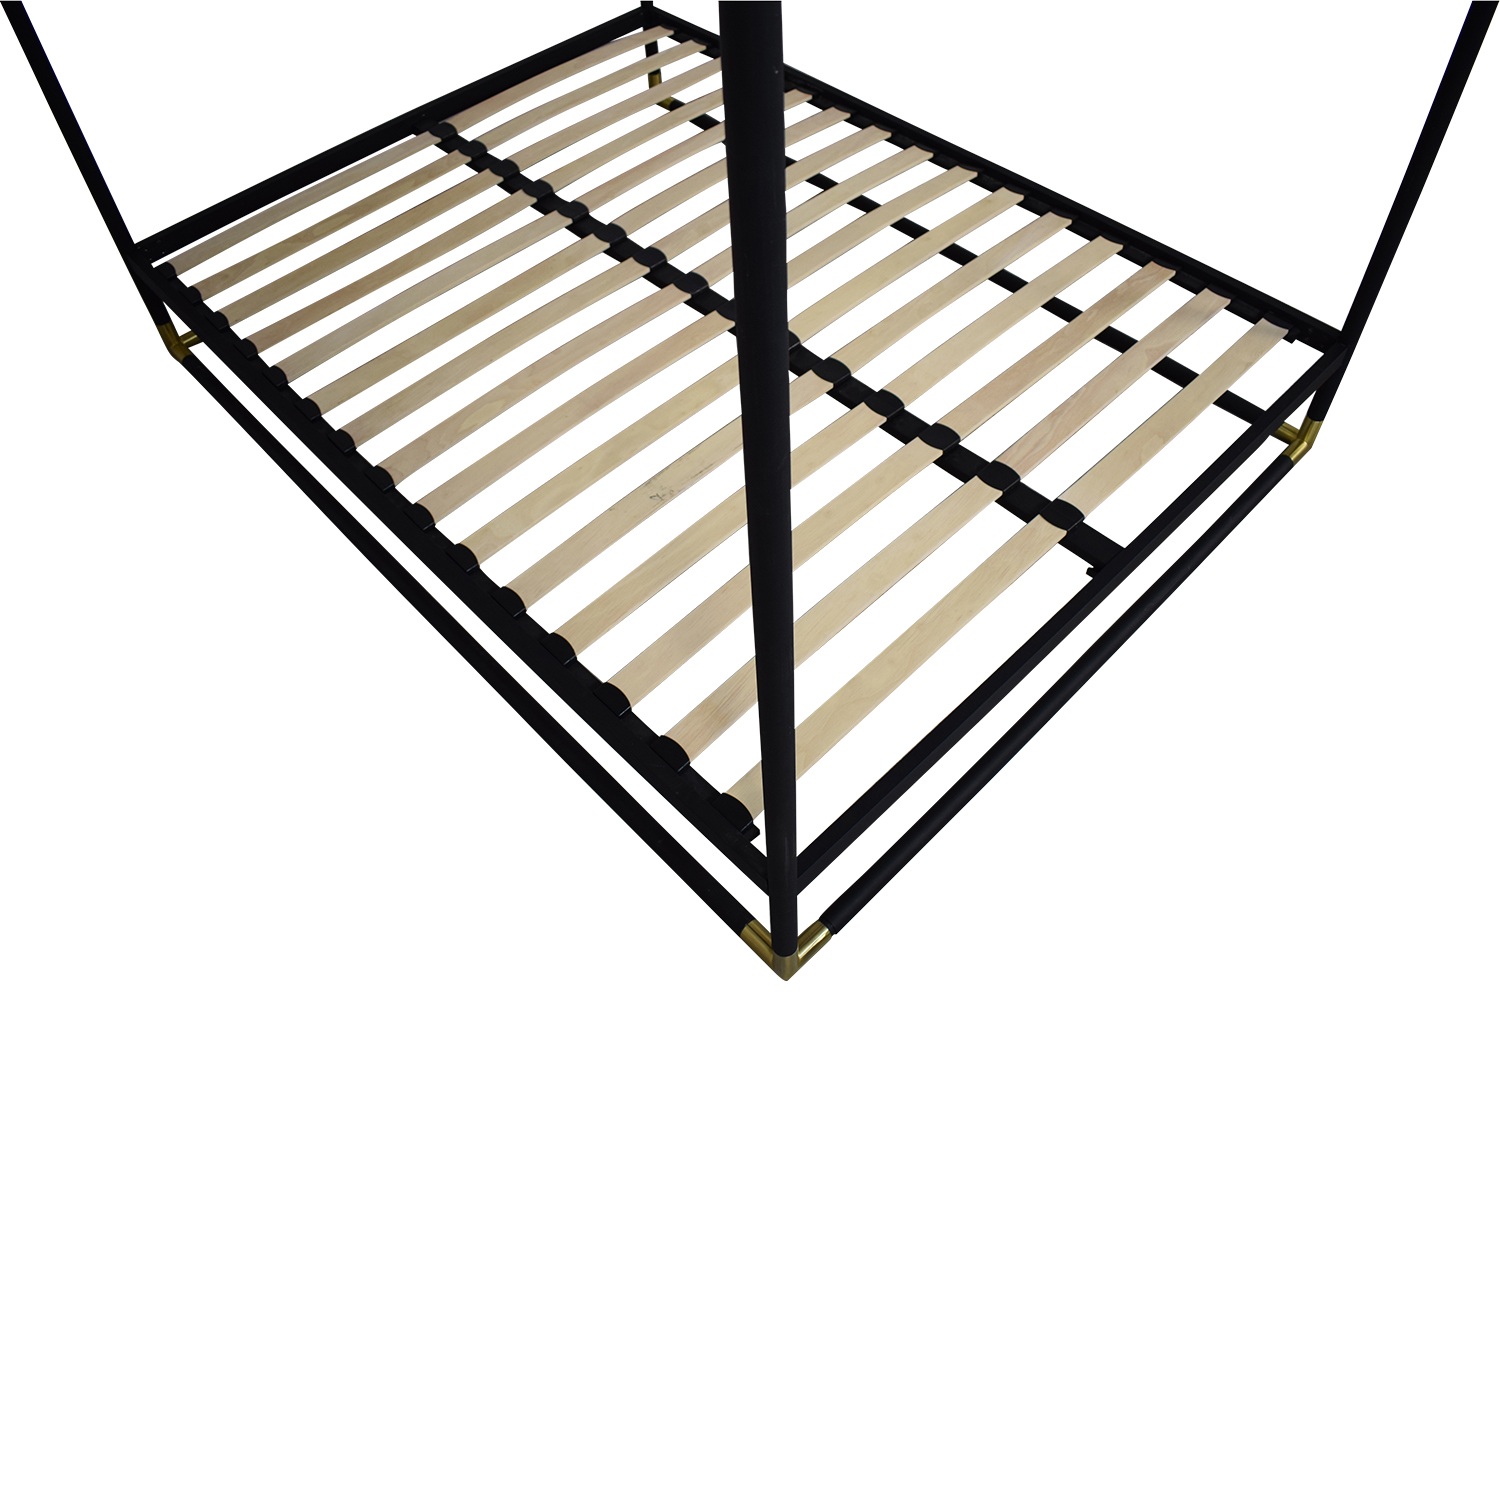 CB2 CB2 Frame Canopy Queen Bed dimensions